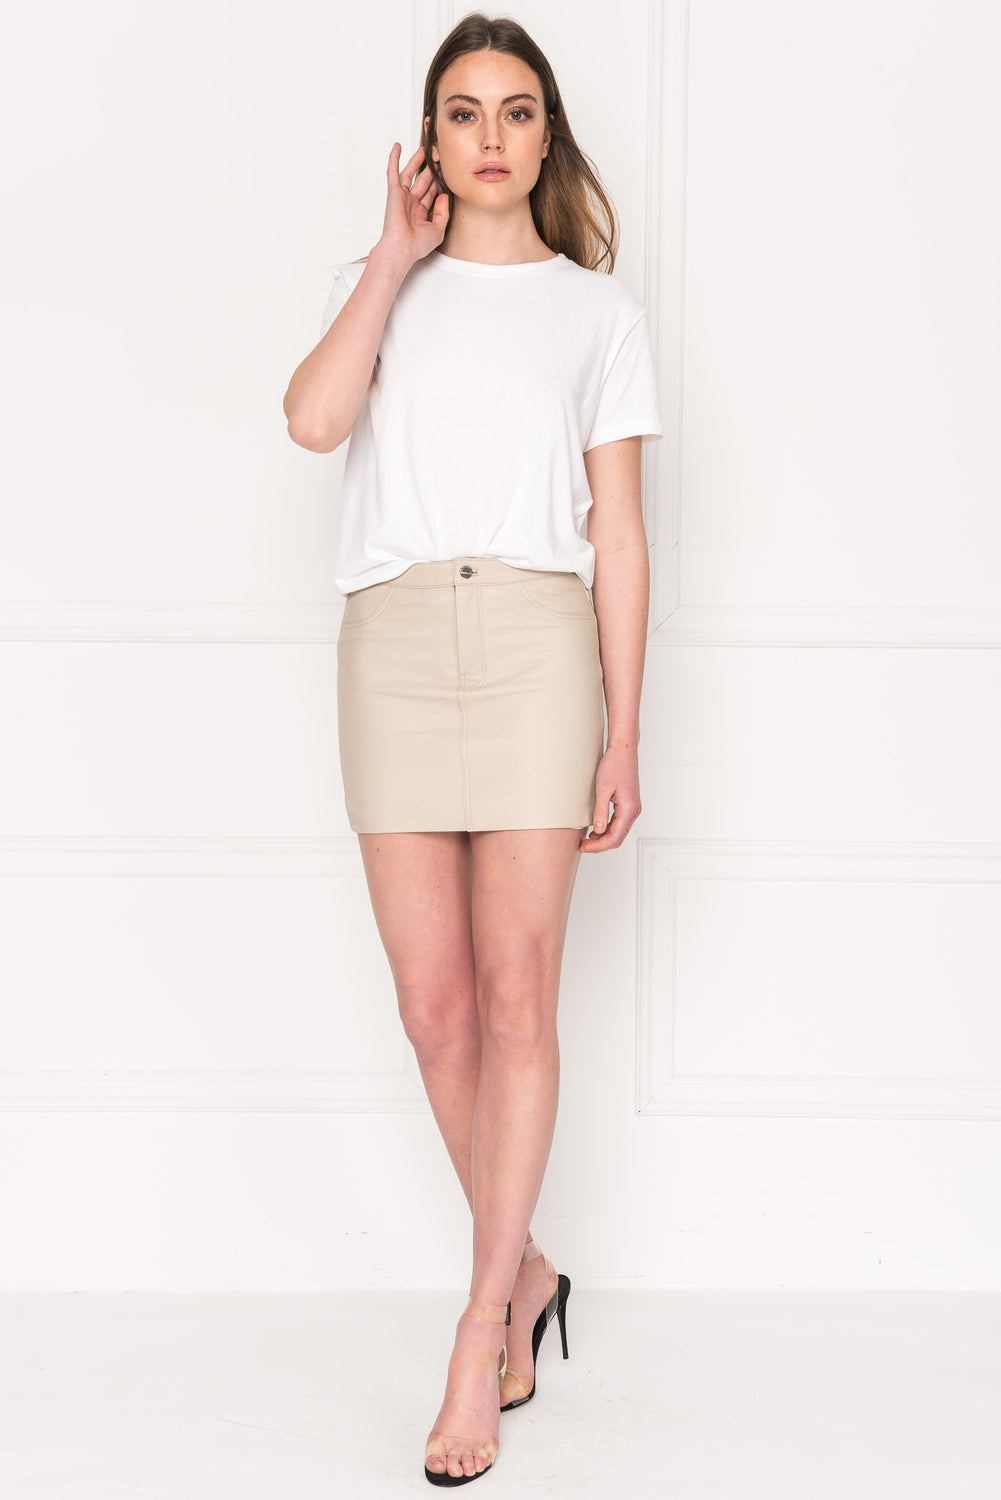 MELORA ECO Sand Leather Jean Mini Skirt